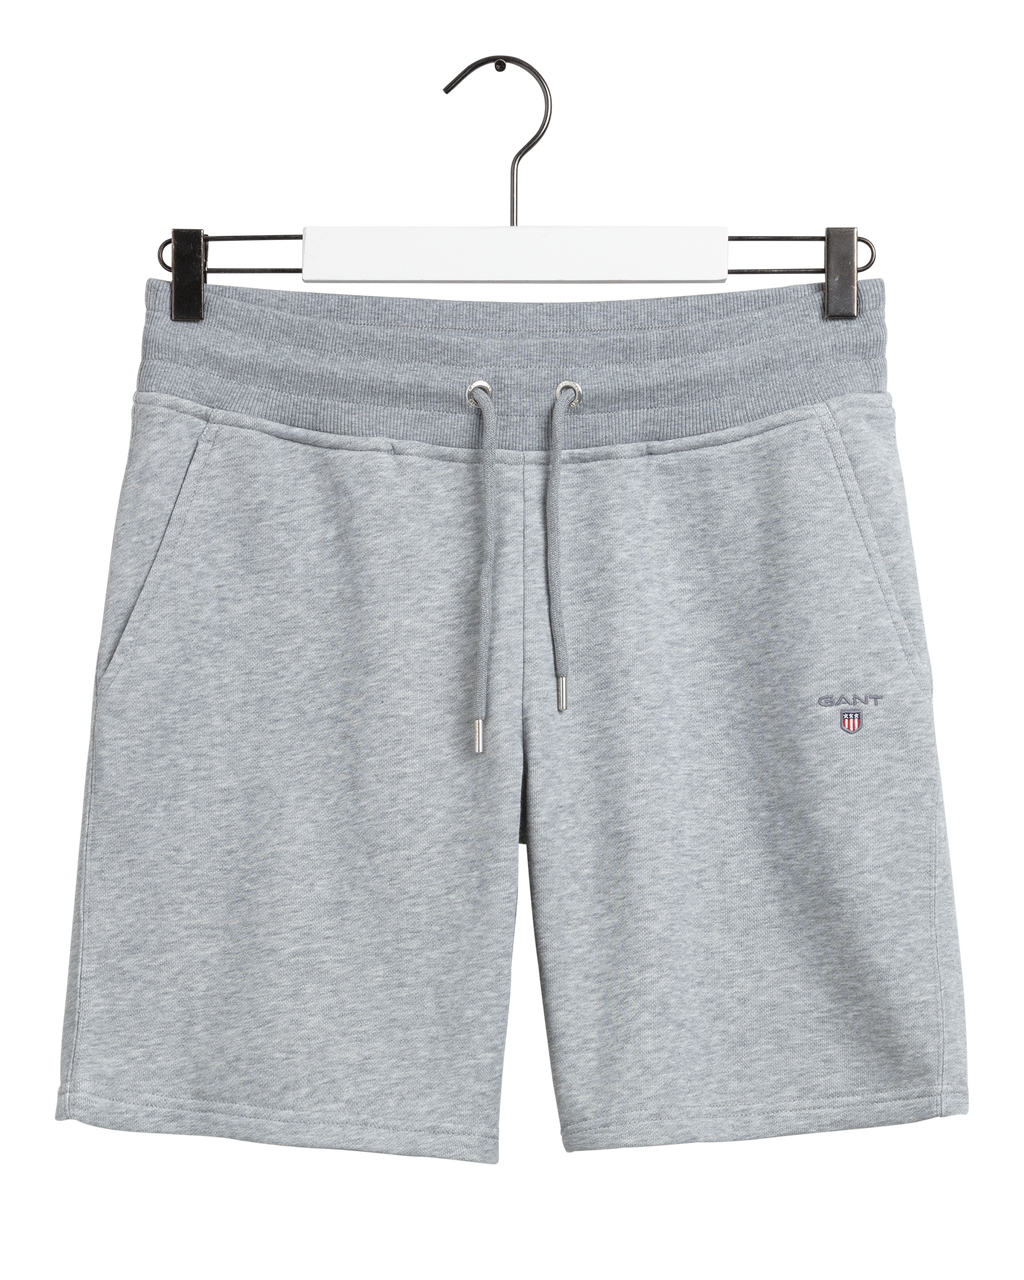 ORIGINAL SWEAT SHORTS